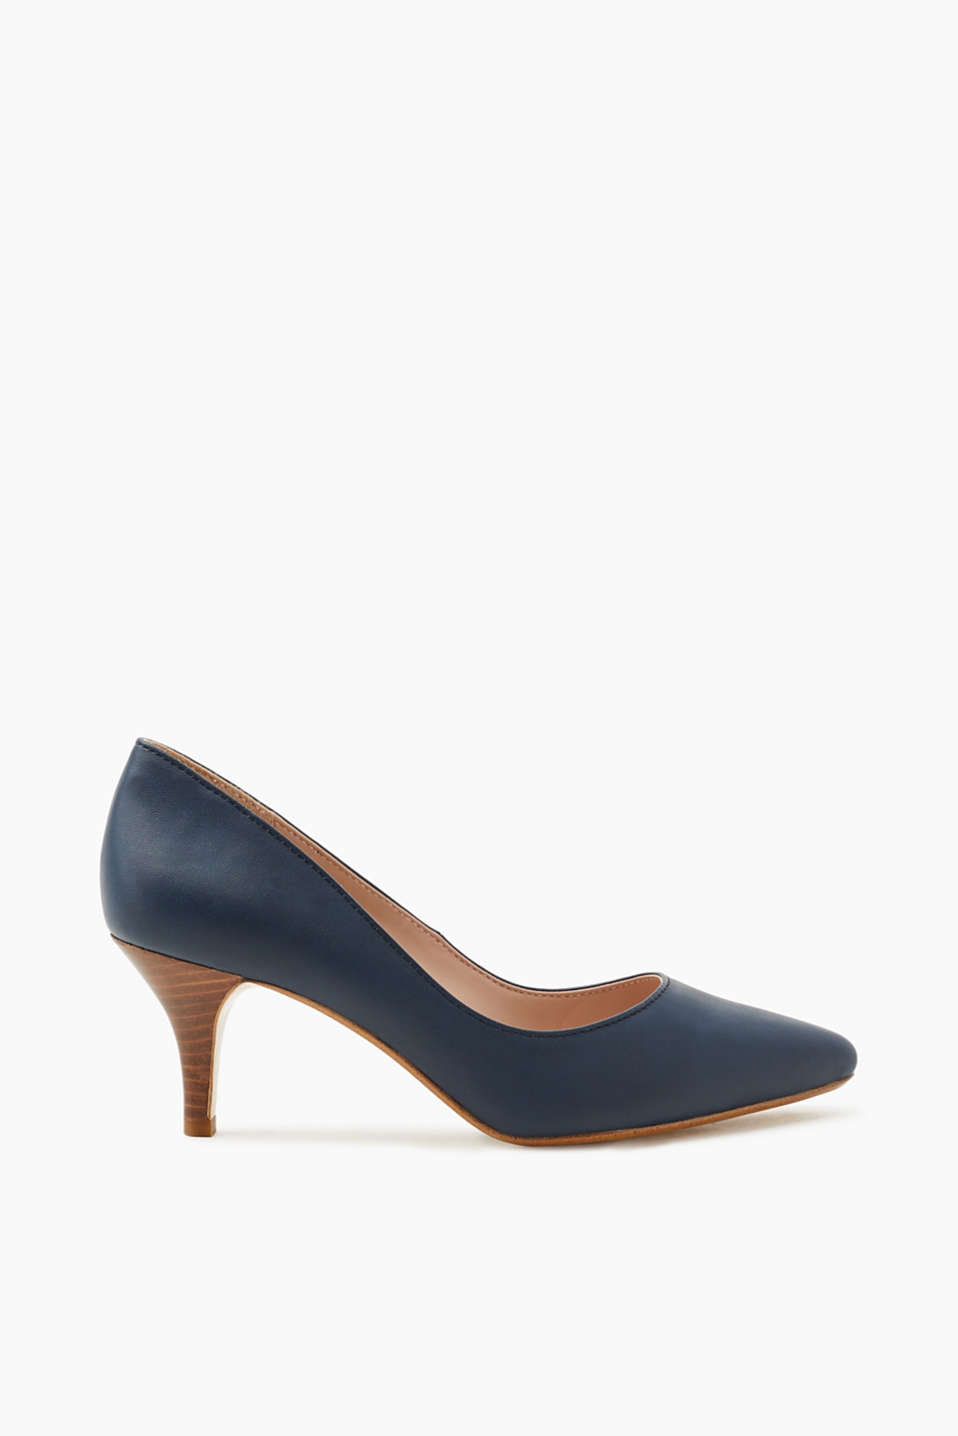 Esprit - Pumps met hak met houtlook